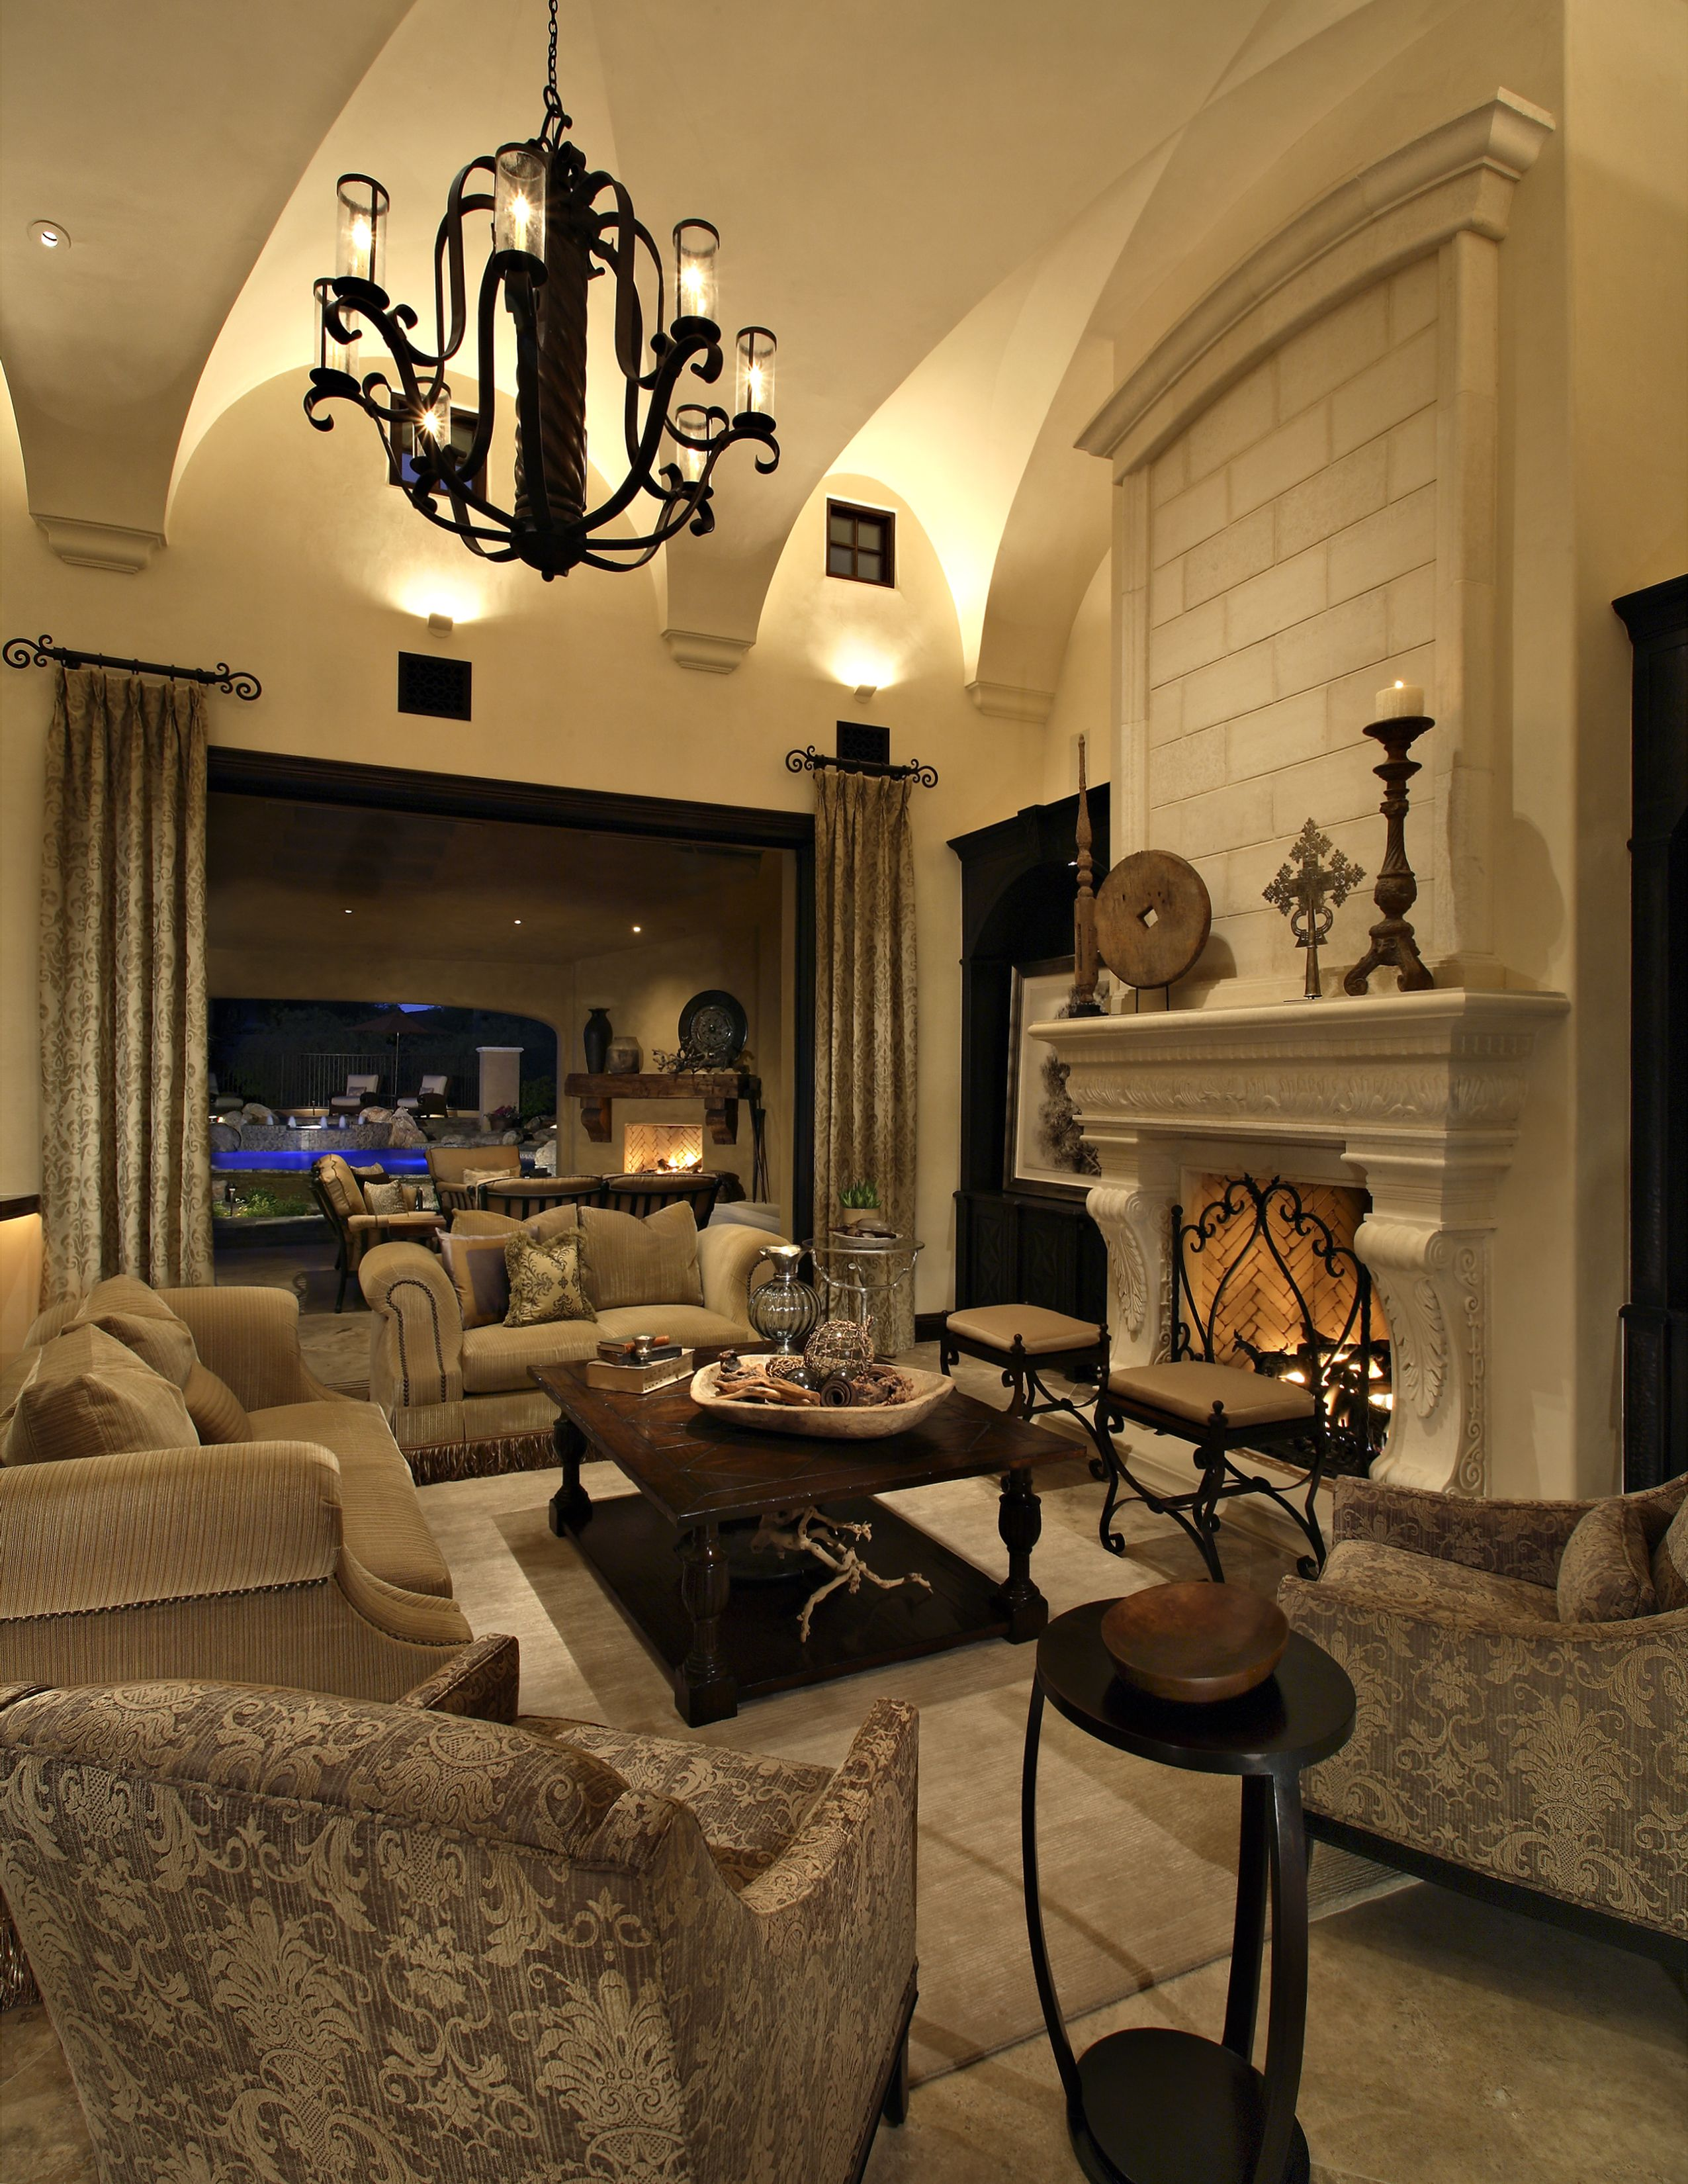 Old World Goes Indoor Outdoor In This Candelaria Design Home Scottsdale Az Www Candelariadesign